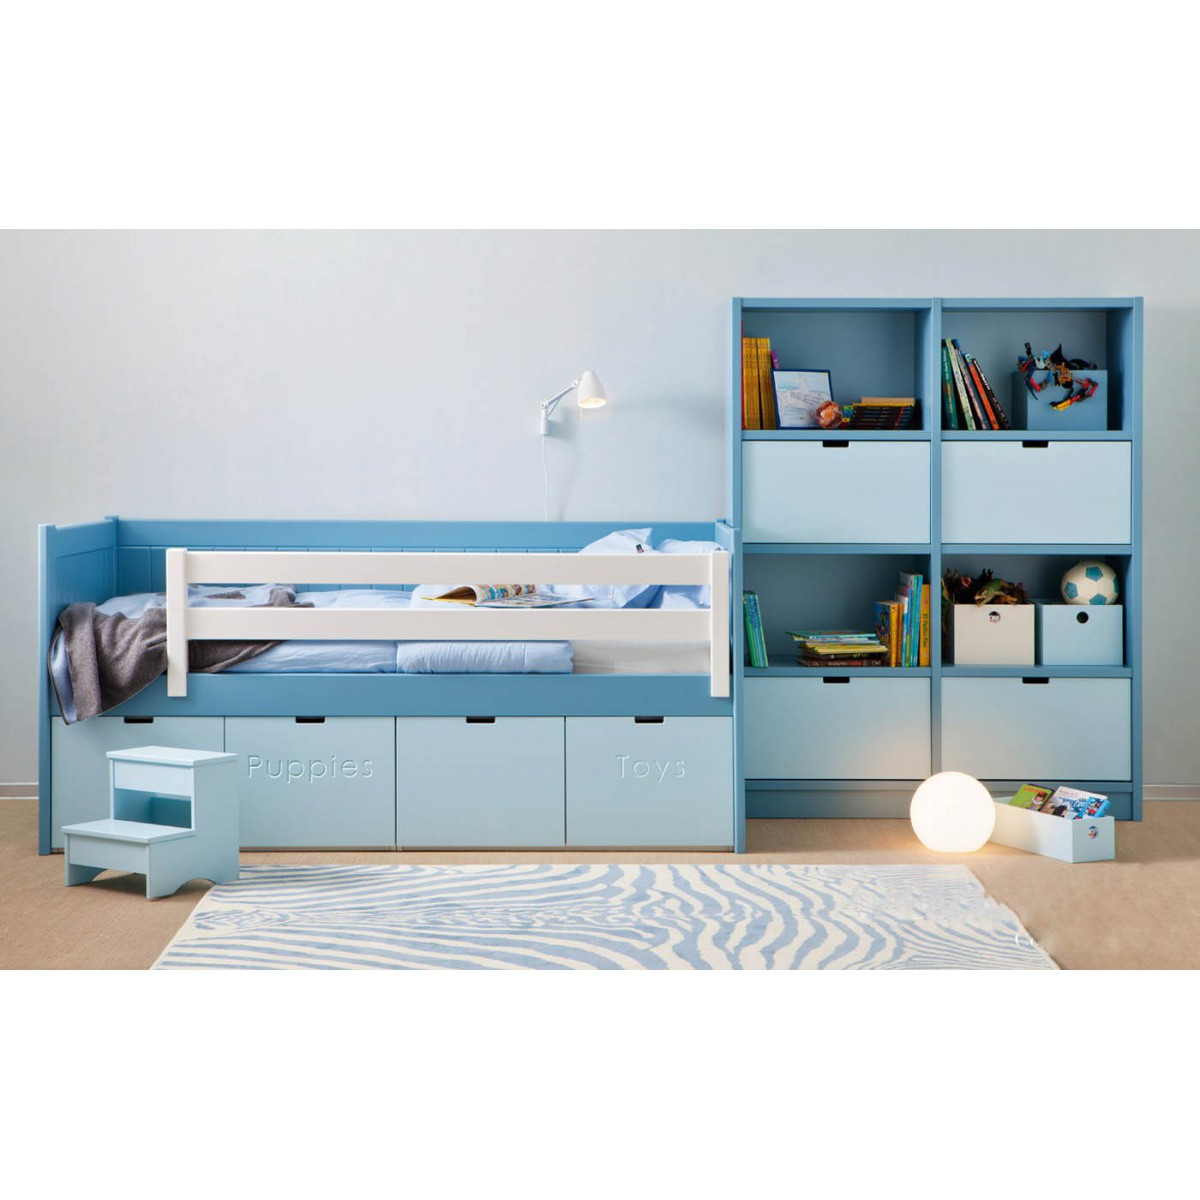 Distributeur officiel du mobilier enfants de qualit asoral for Ensemble meuble de chambre